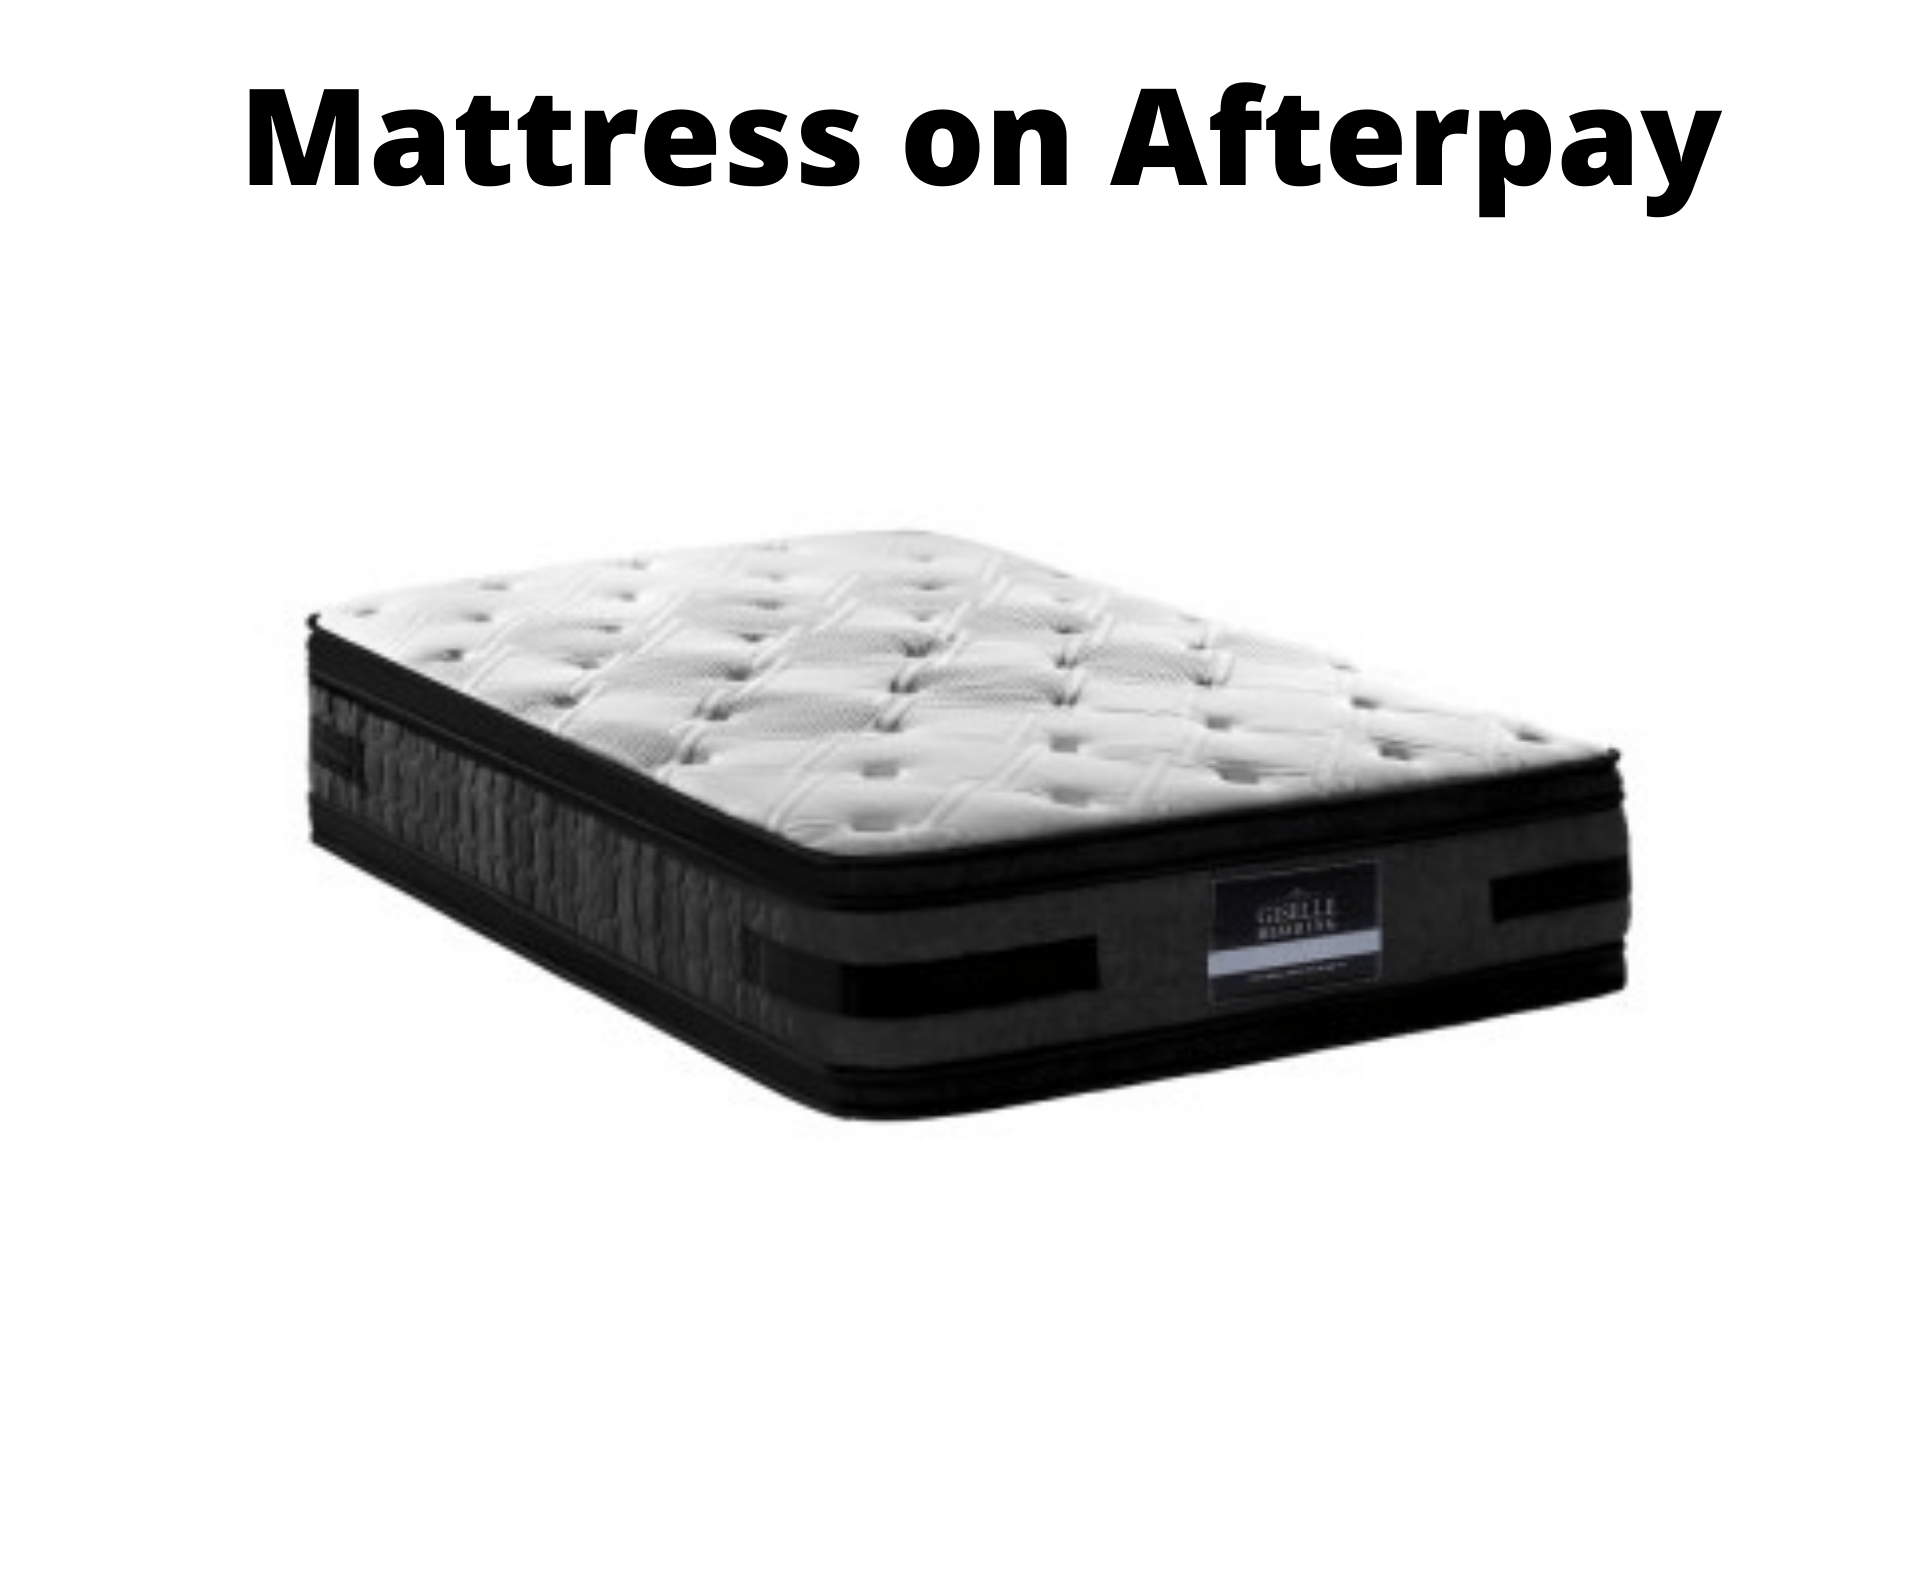 single mattress afterpay